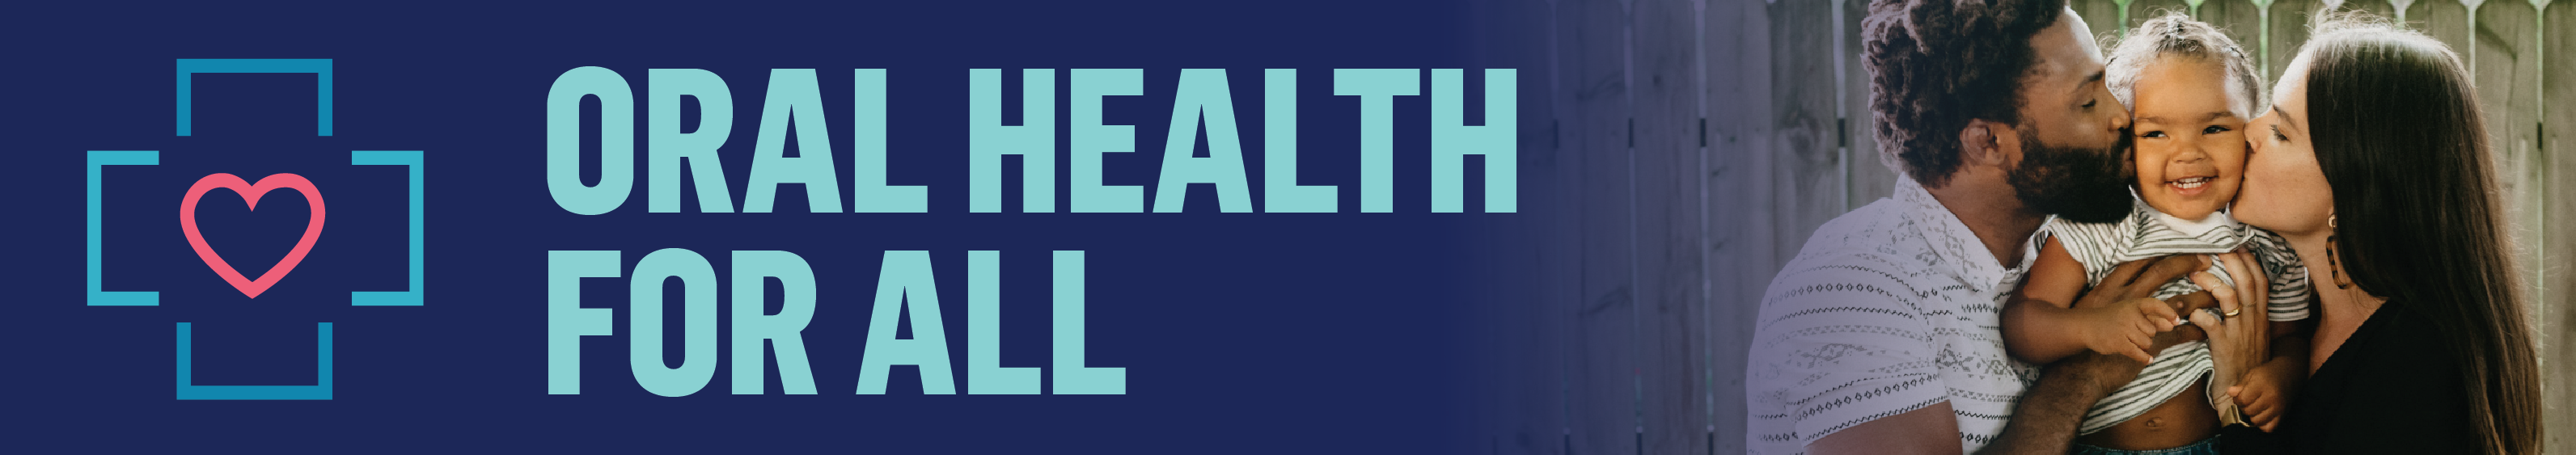 Oral Health for All banner